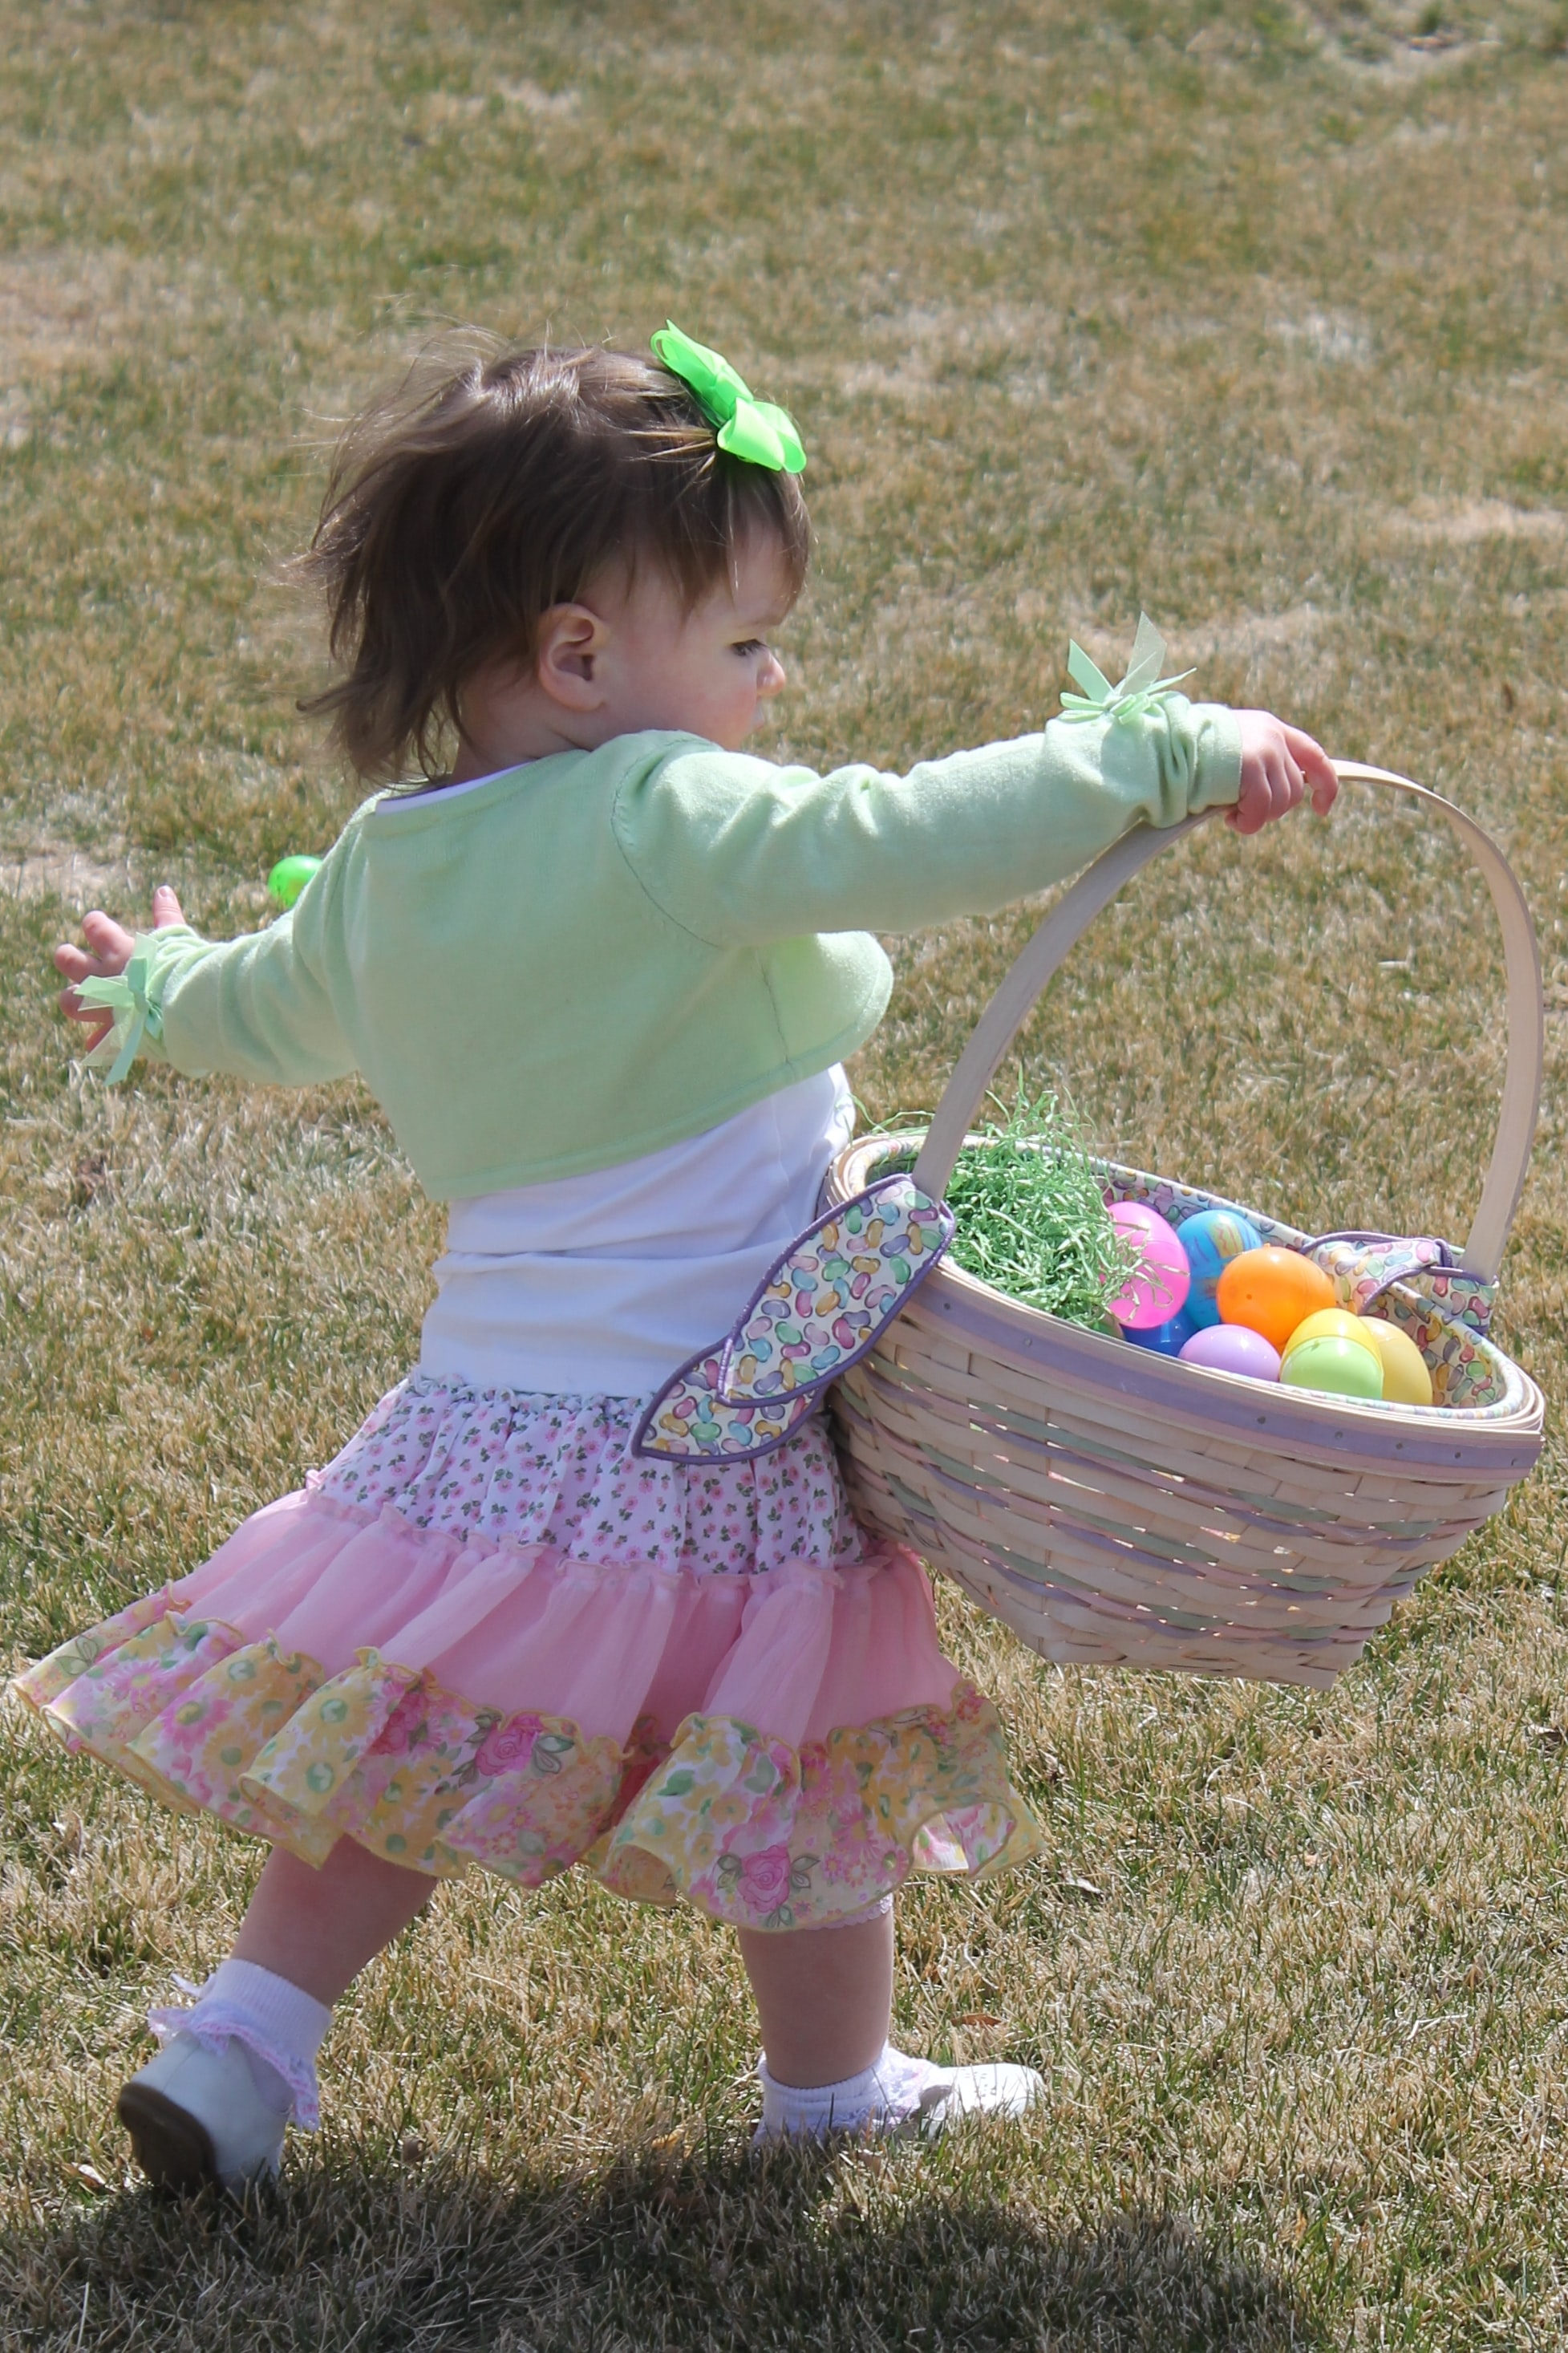 A girl carrying plastic eggs in an Easter basket.